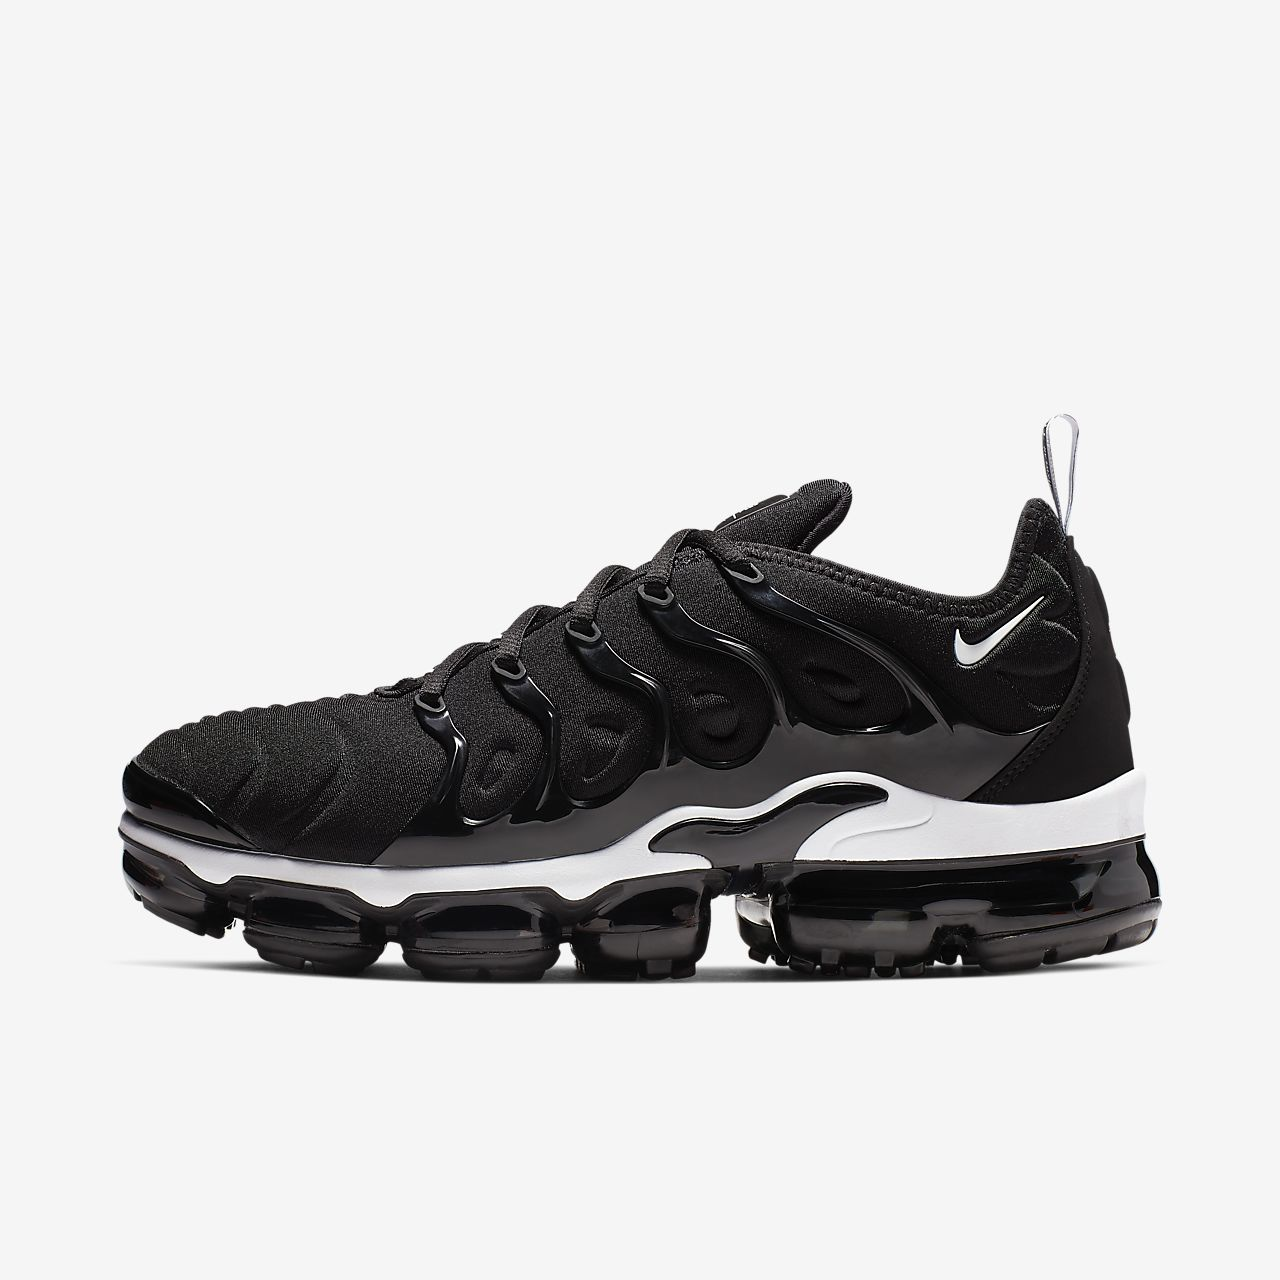 afbac05714d91 Mens Nike Air VaporMax 2019 Black gray Colorful AR6631001